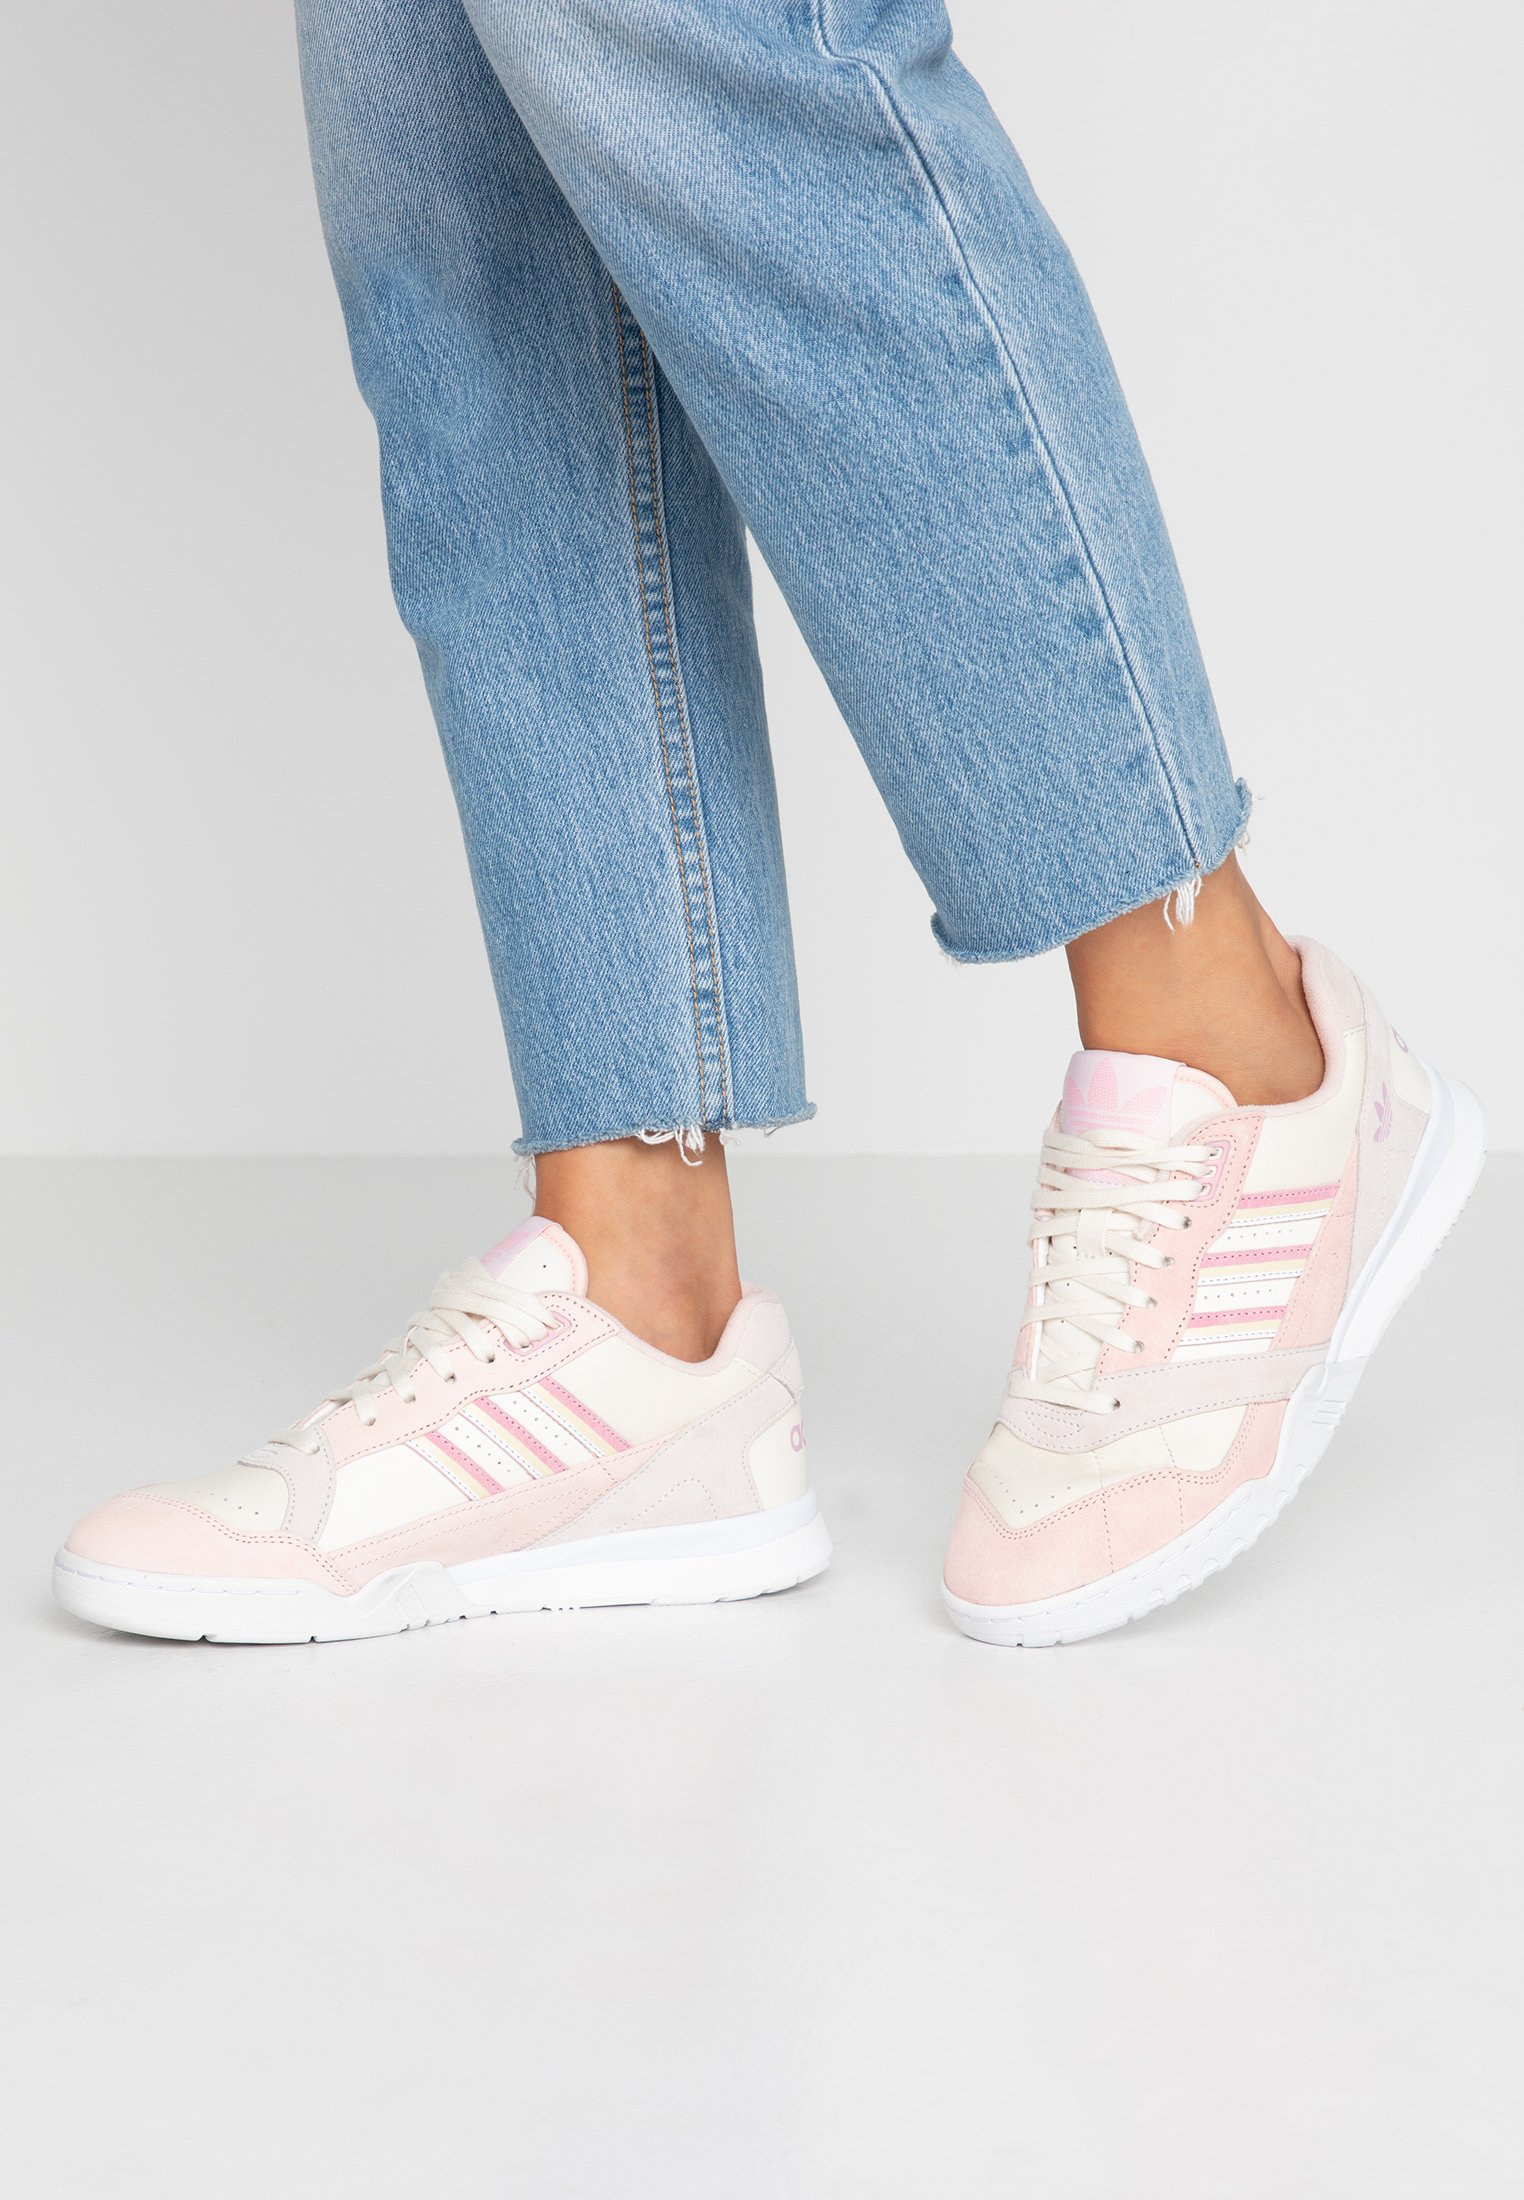 Pink Basse Tint true Adidas Originals orchid Core White A rTrainerSneakers sCxrthdQ